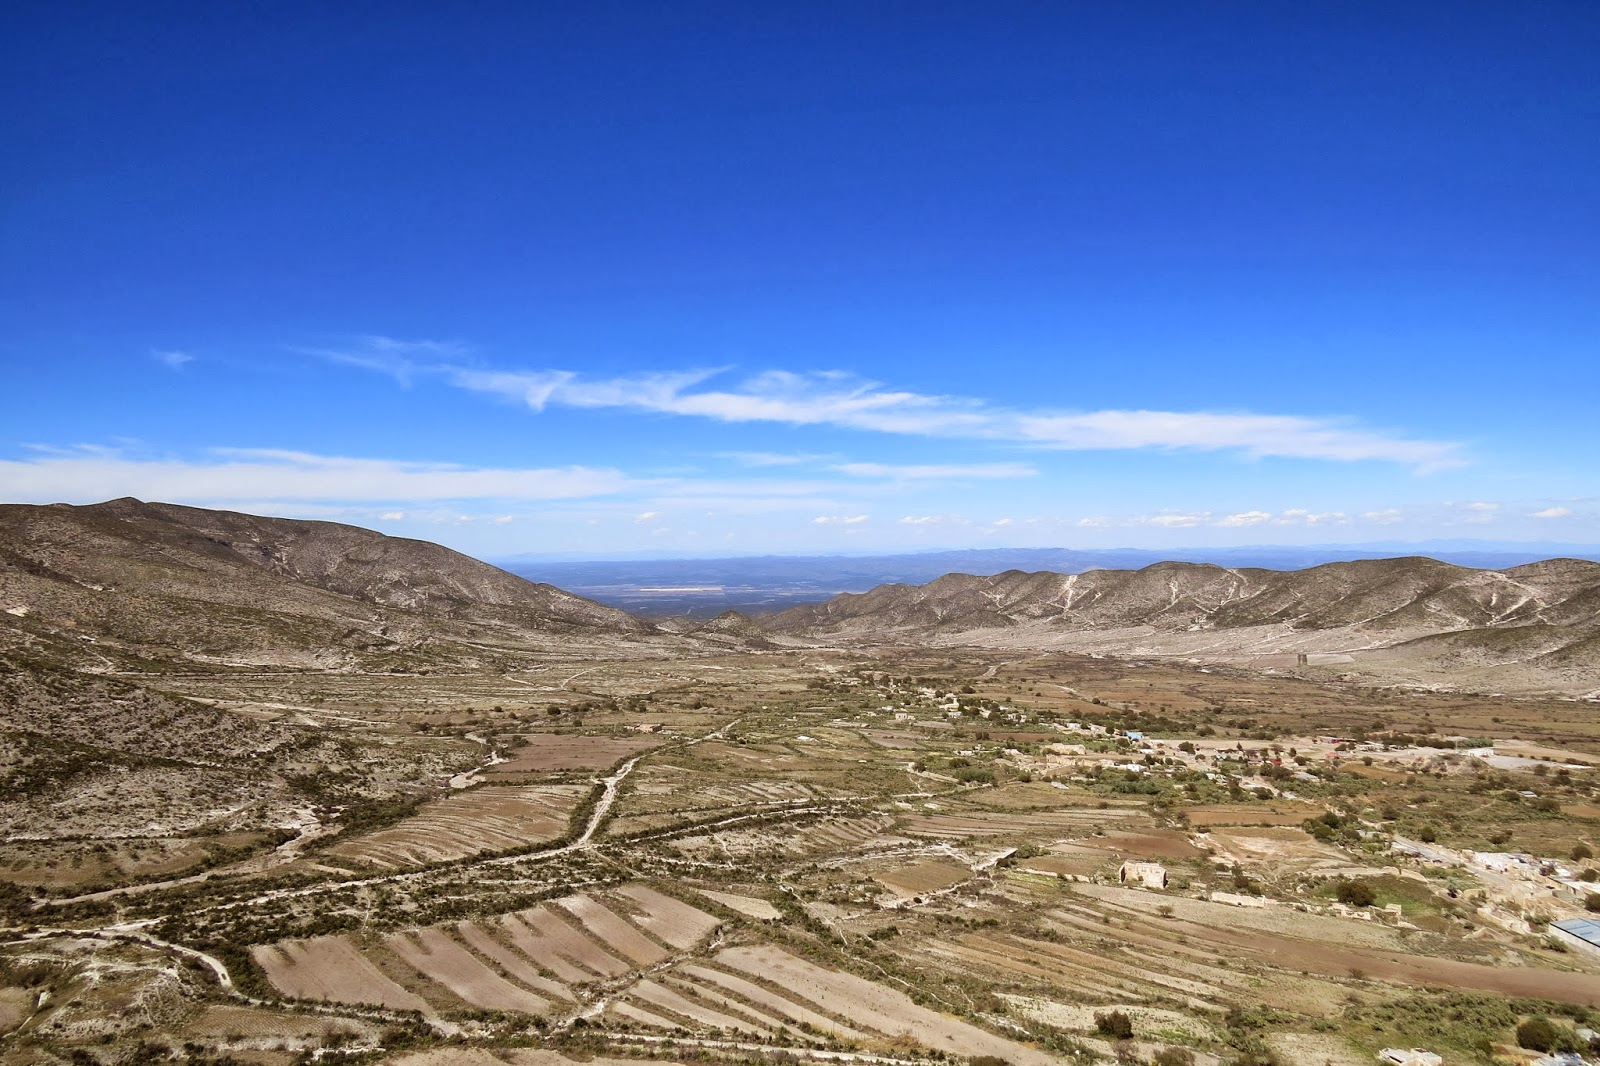 The view north from the east side of the Real de Catorce tunnel